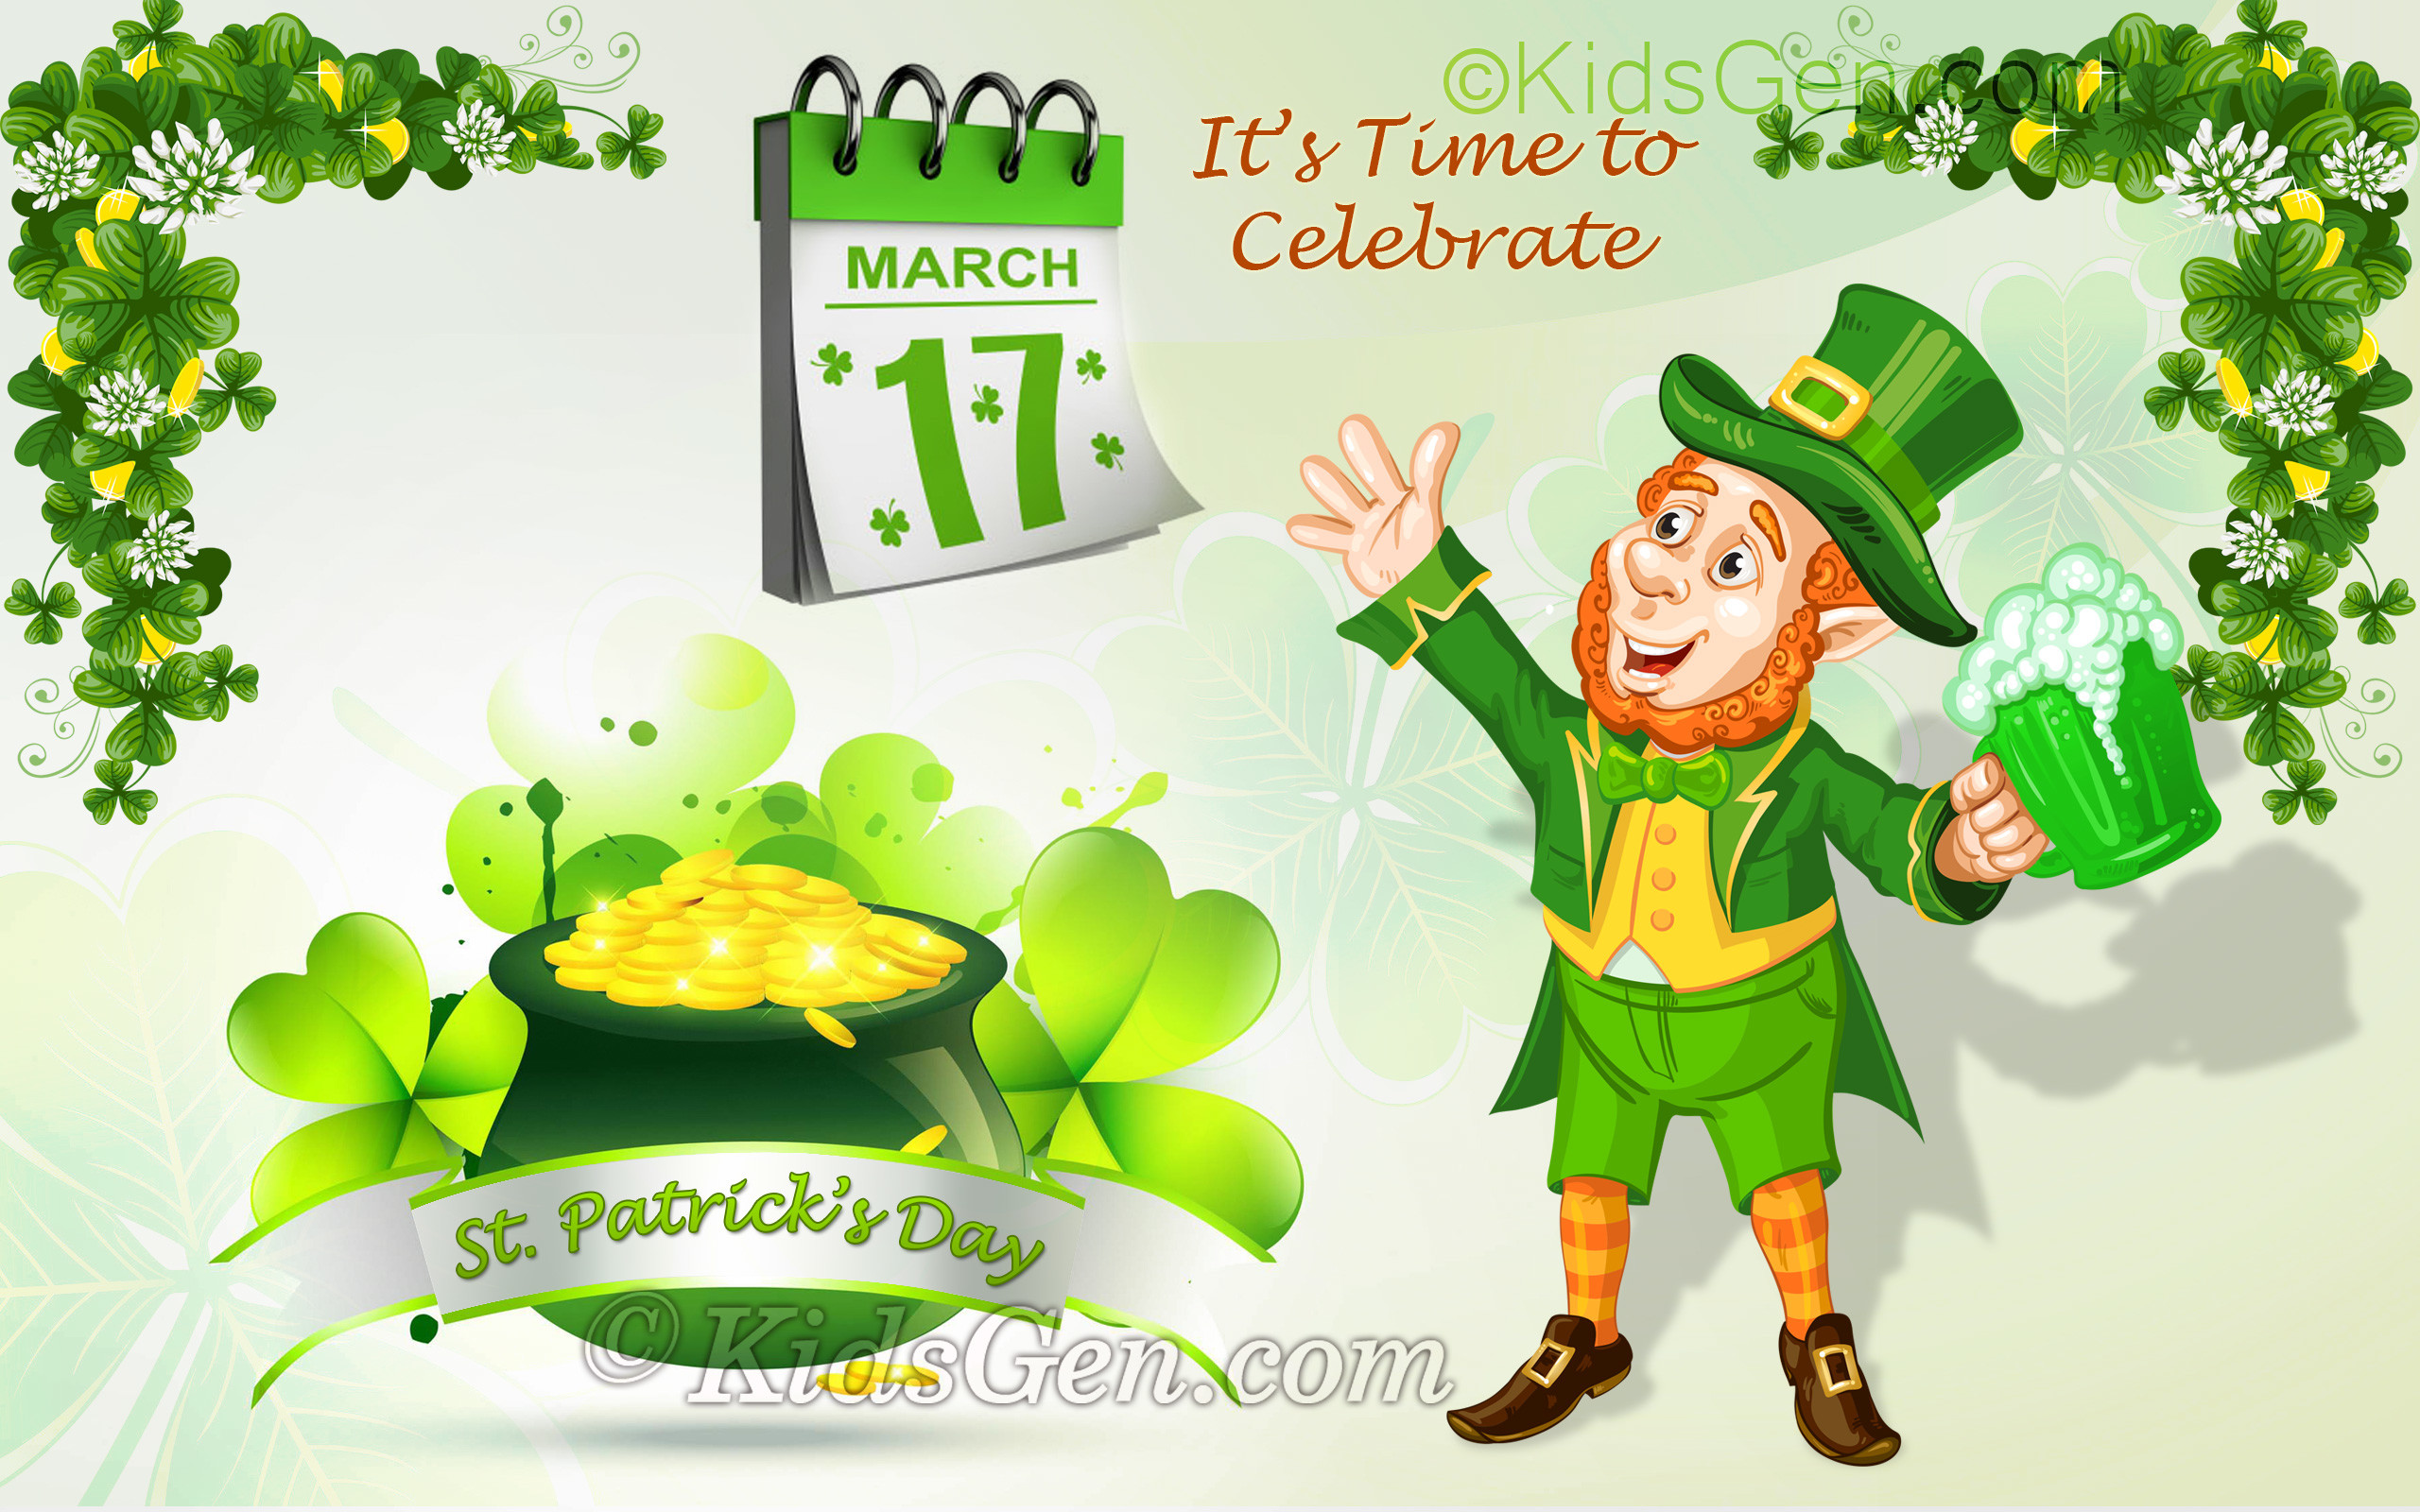 Res: 2560x1600, St. Patrick's Day Wallpaper for kids